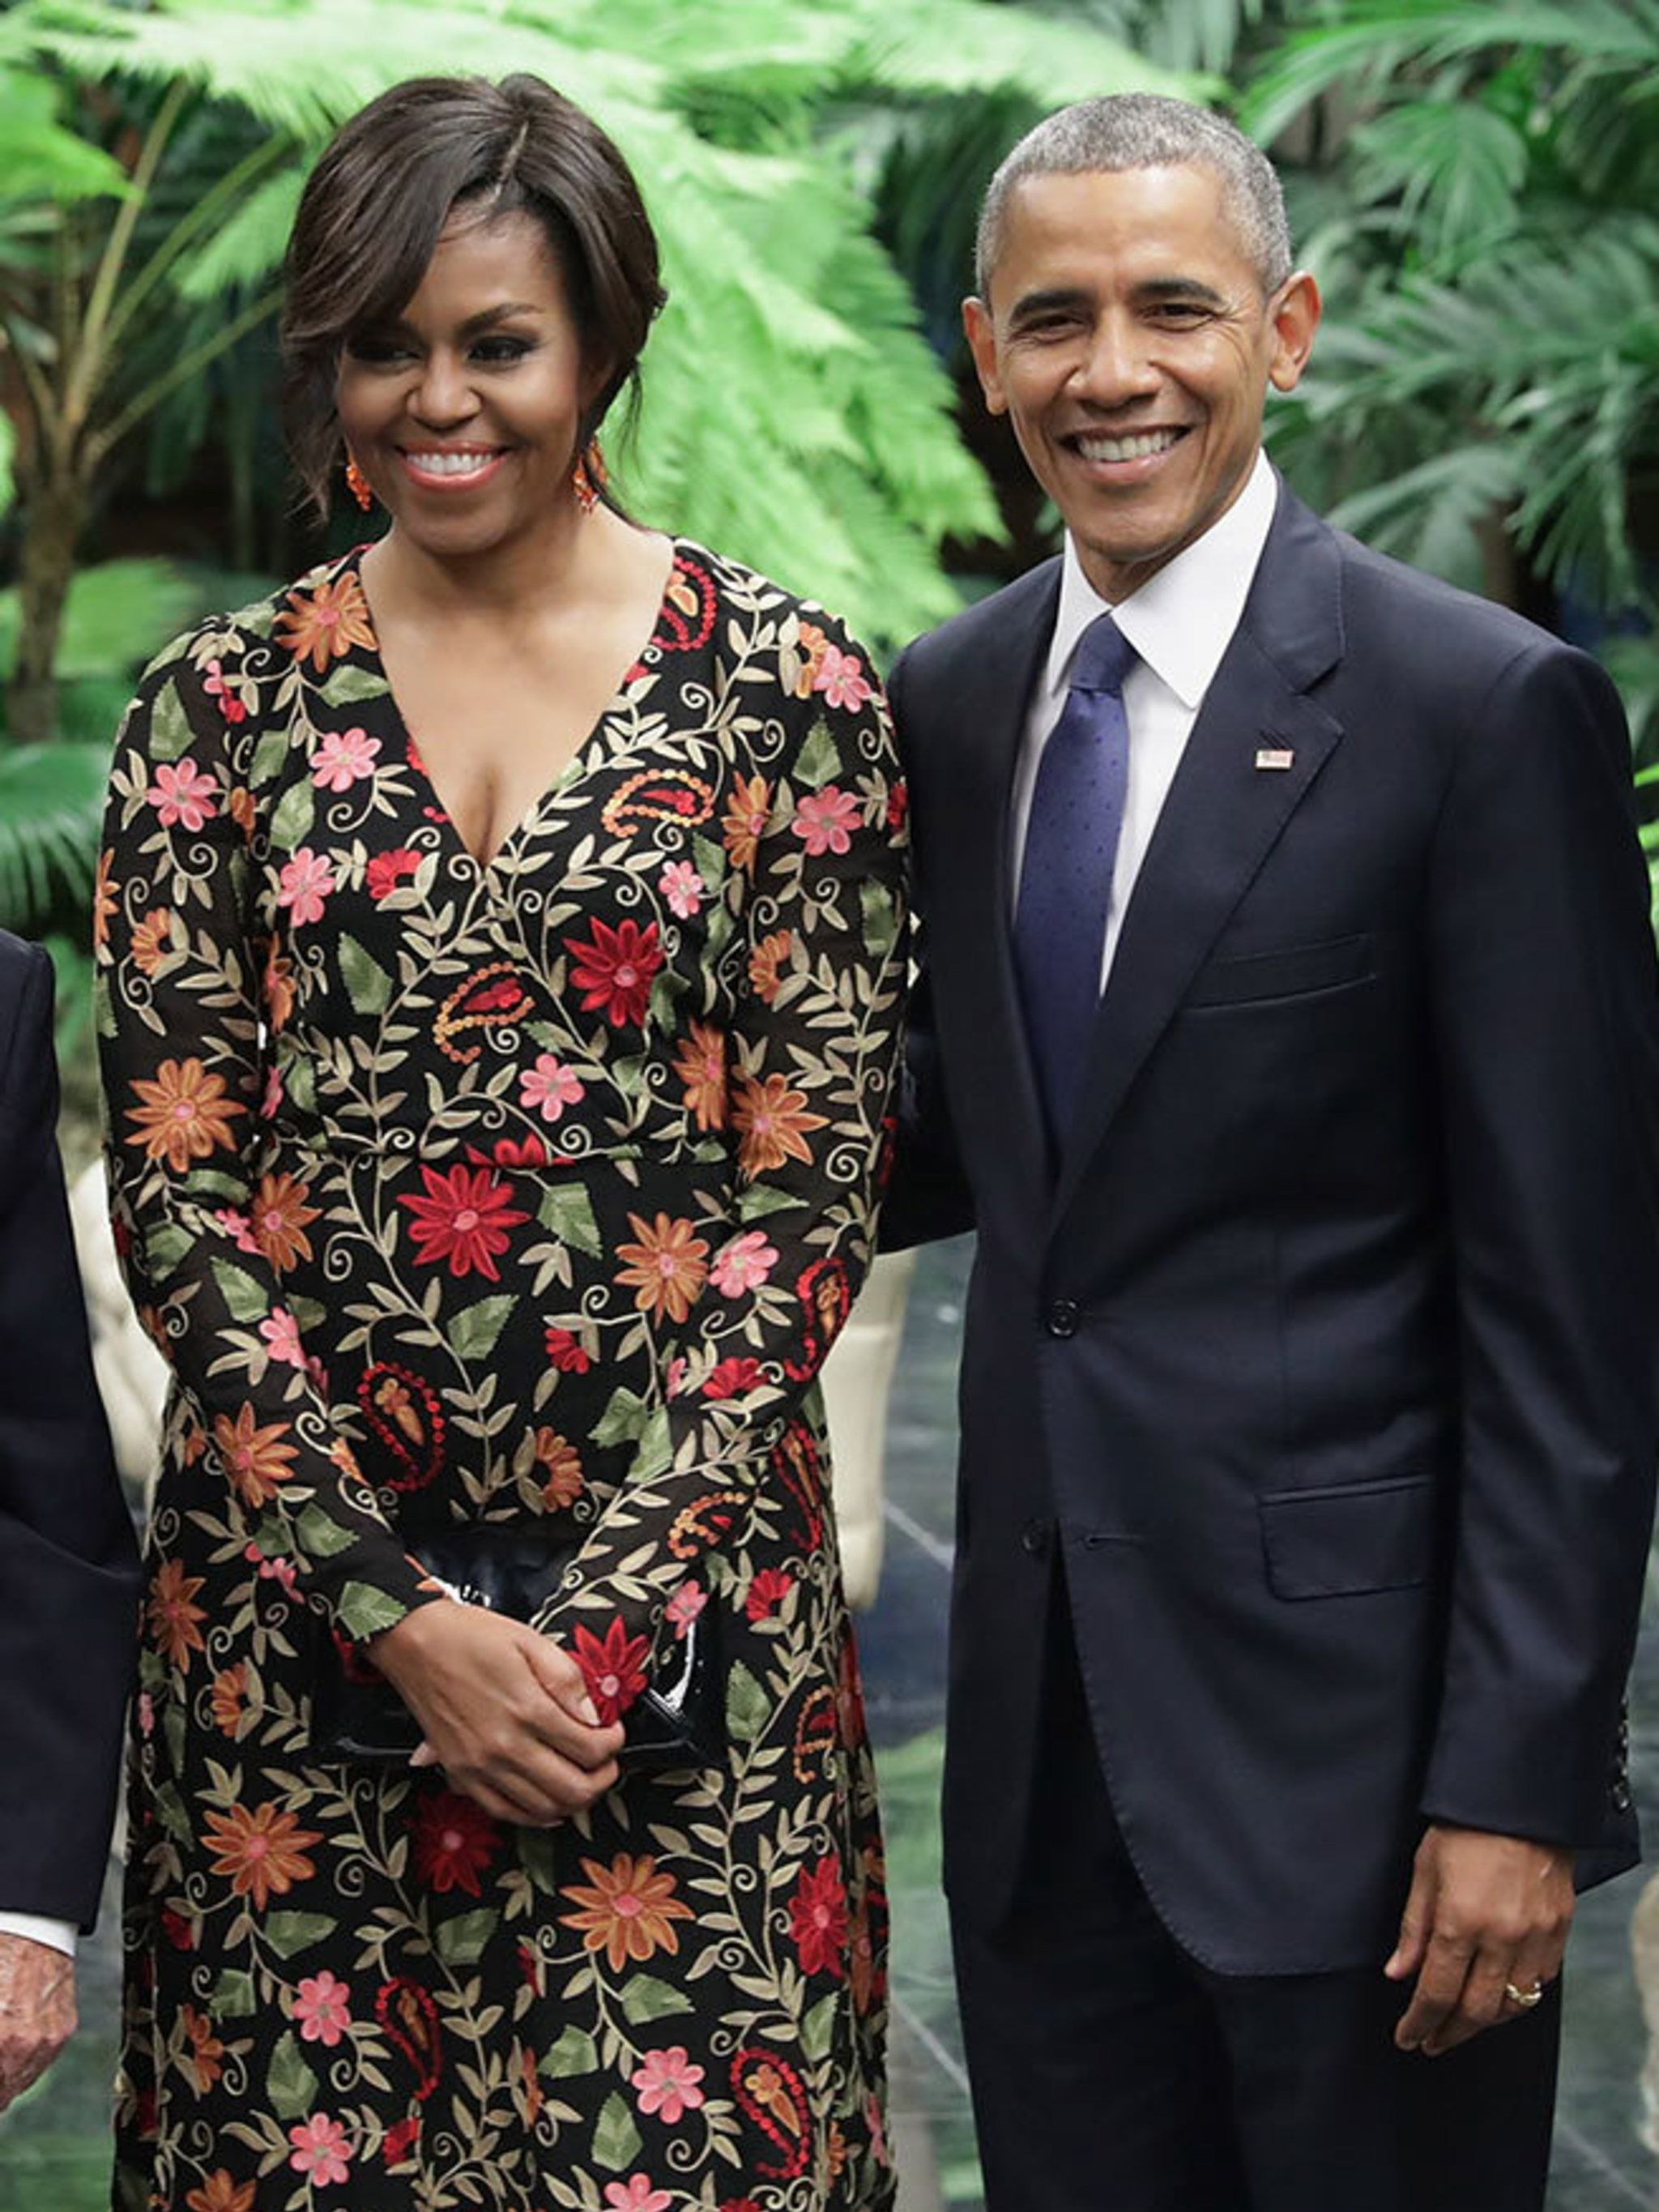 aeaf35647 Michelle Obama's Best Looks: From Naeem Khan Gown To Carolina Herrera Shift  Dresses